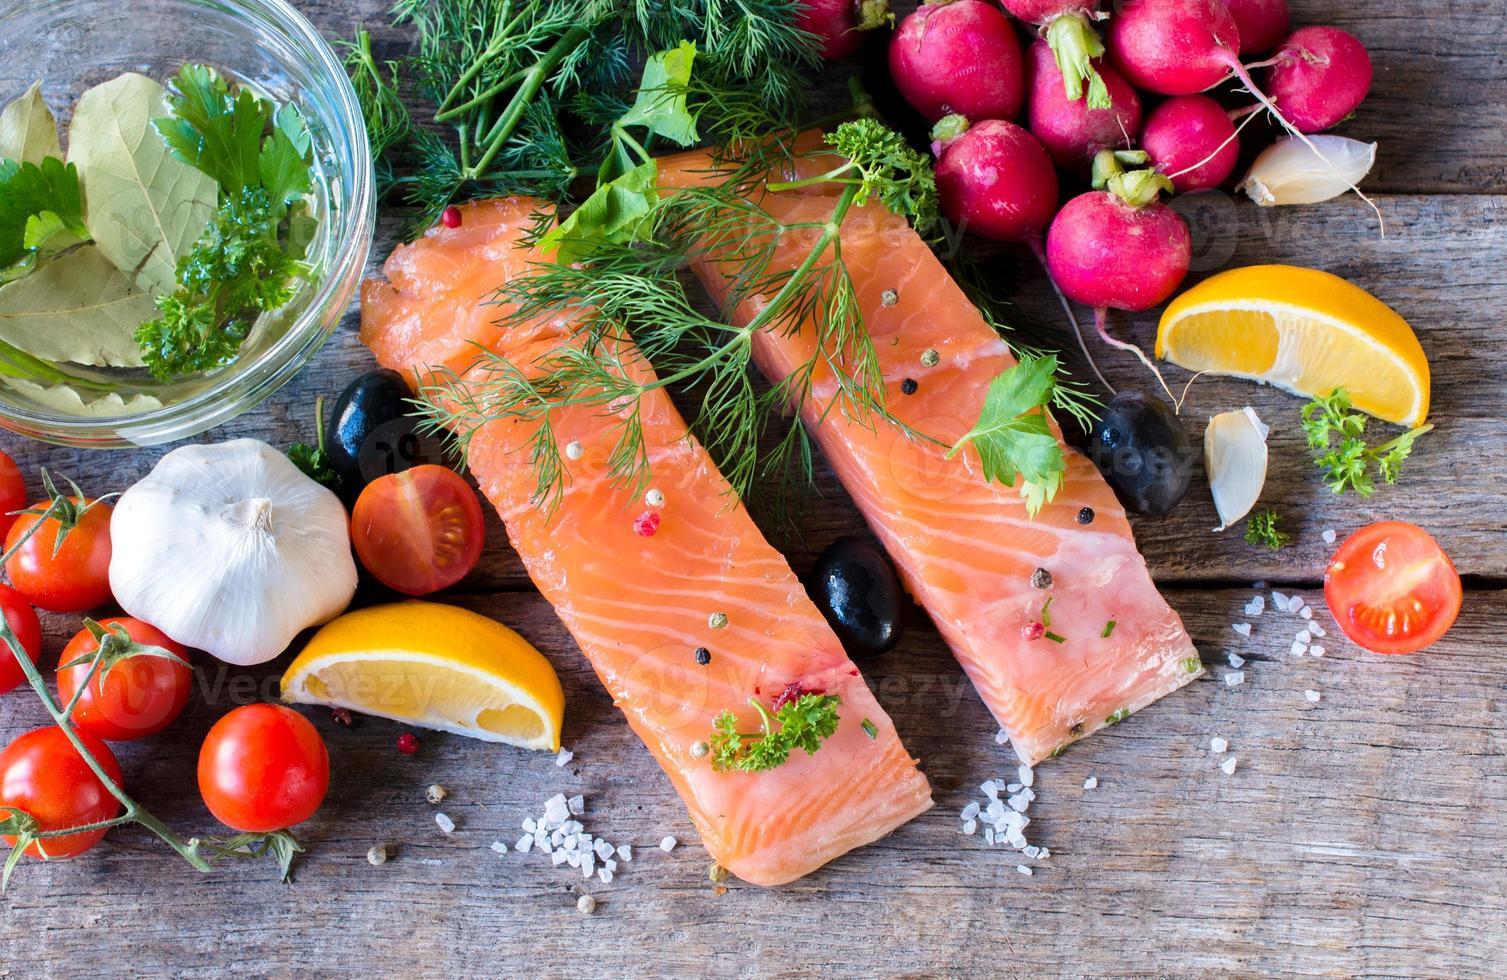 Salmon fillets from above photo